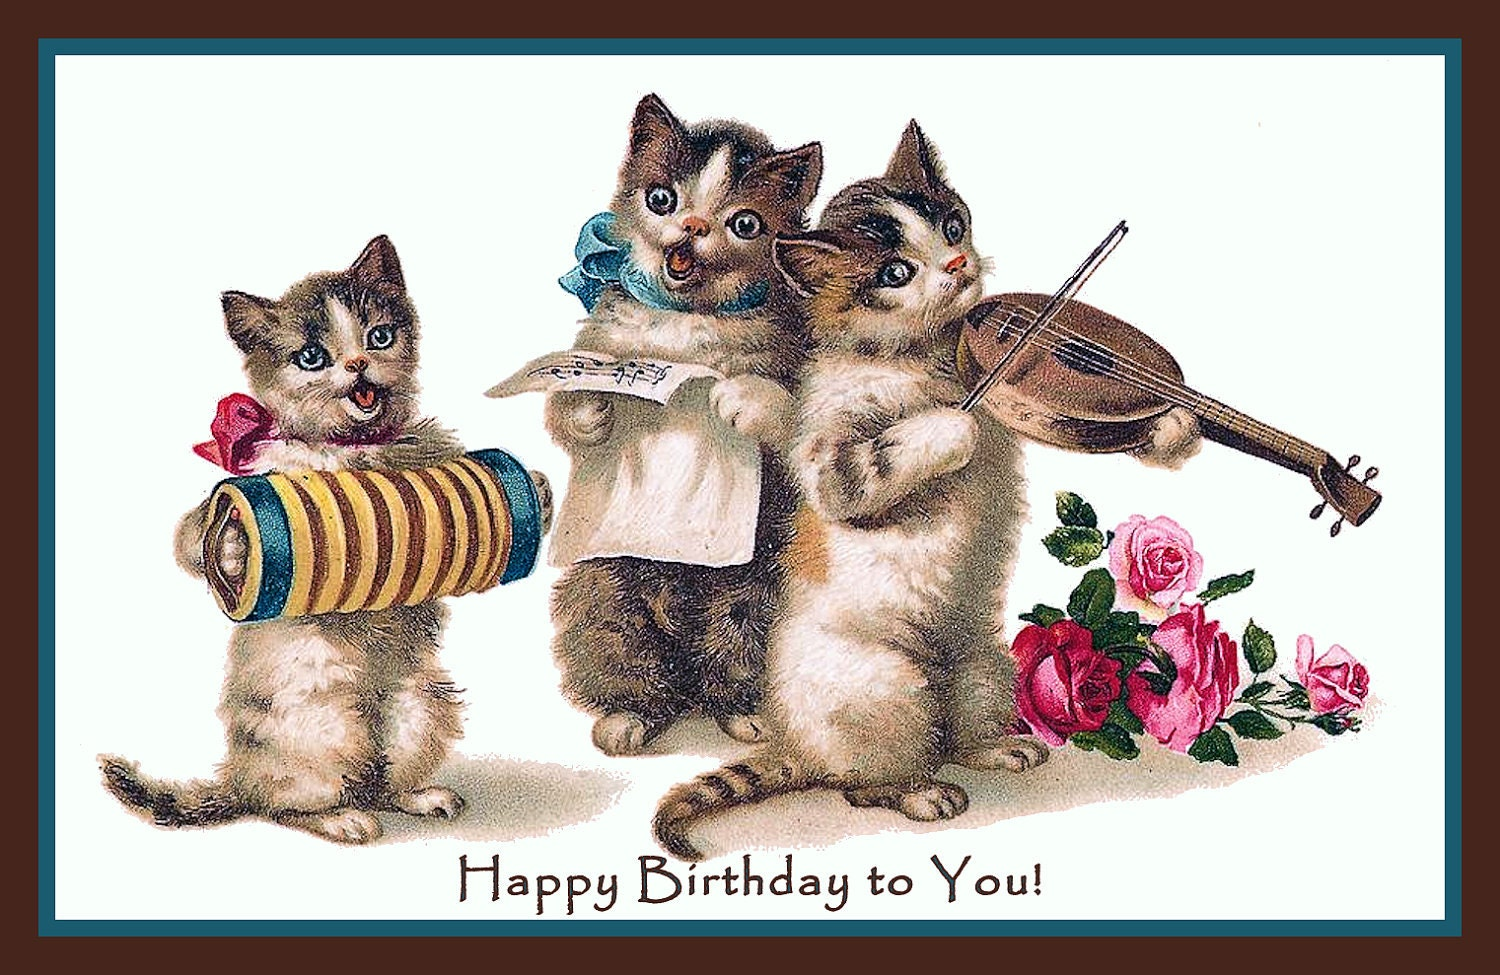 Cute Kitten Happy Birthday Images images